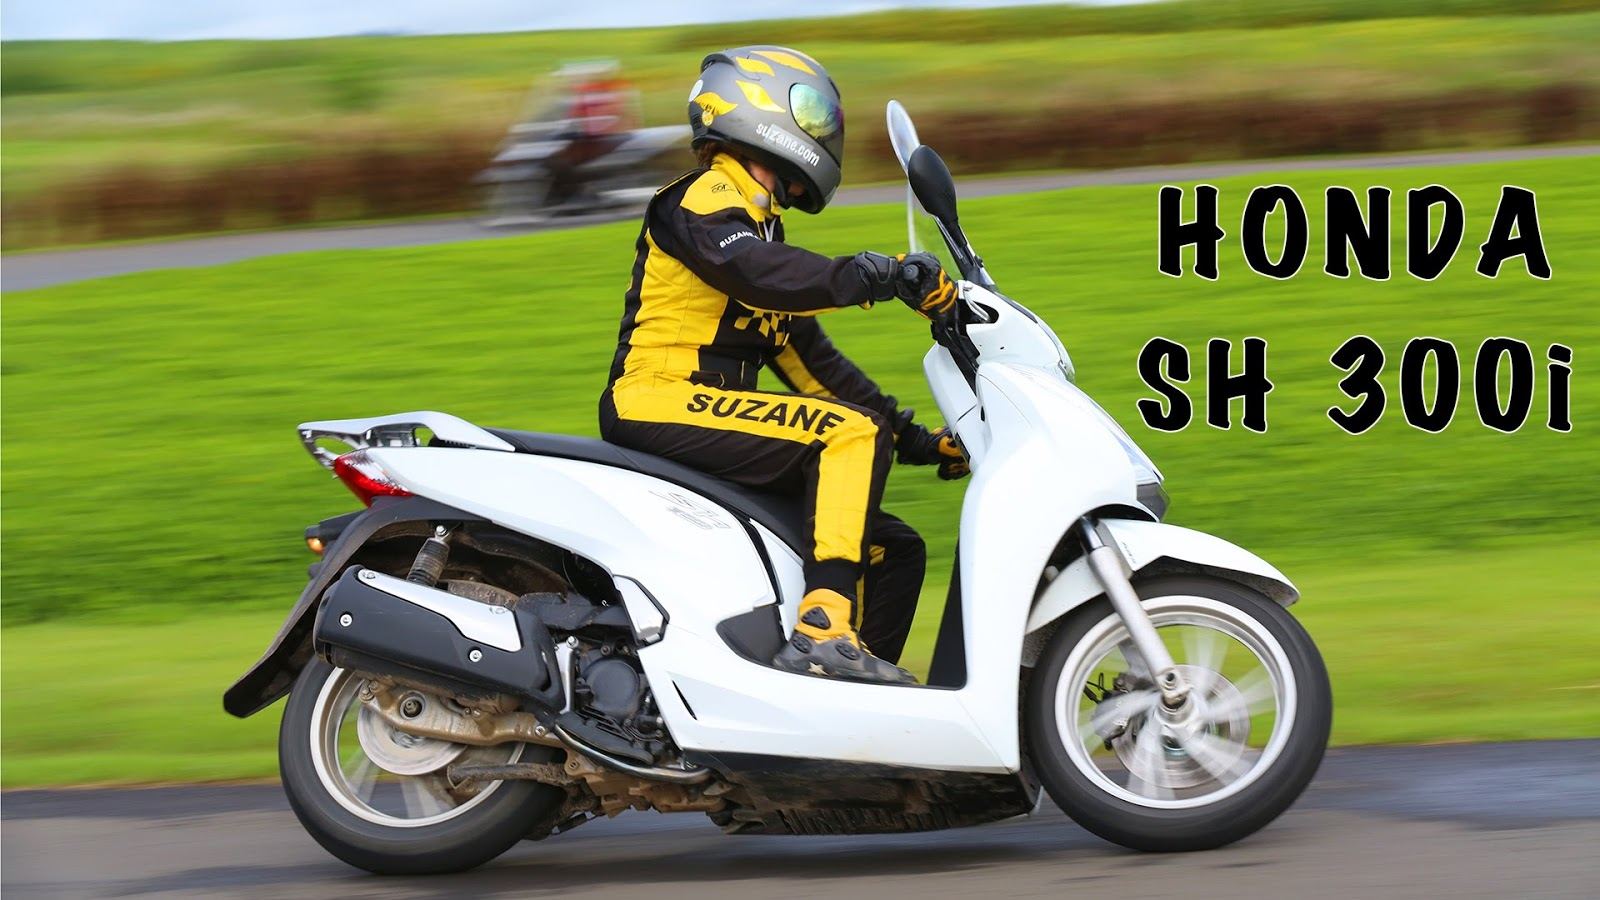 new 2016 honda sh300i scooter hd wallpaper types cars. Black Bedroom Furniture Sets. Home Design Ideas